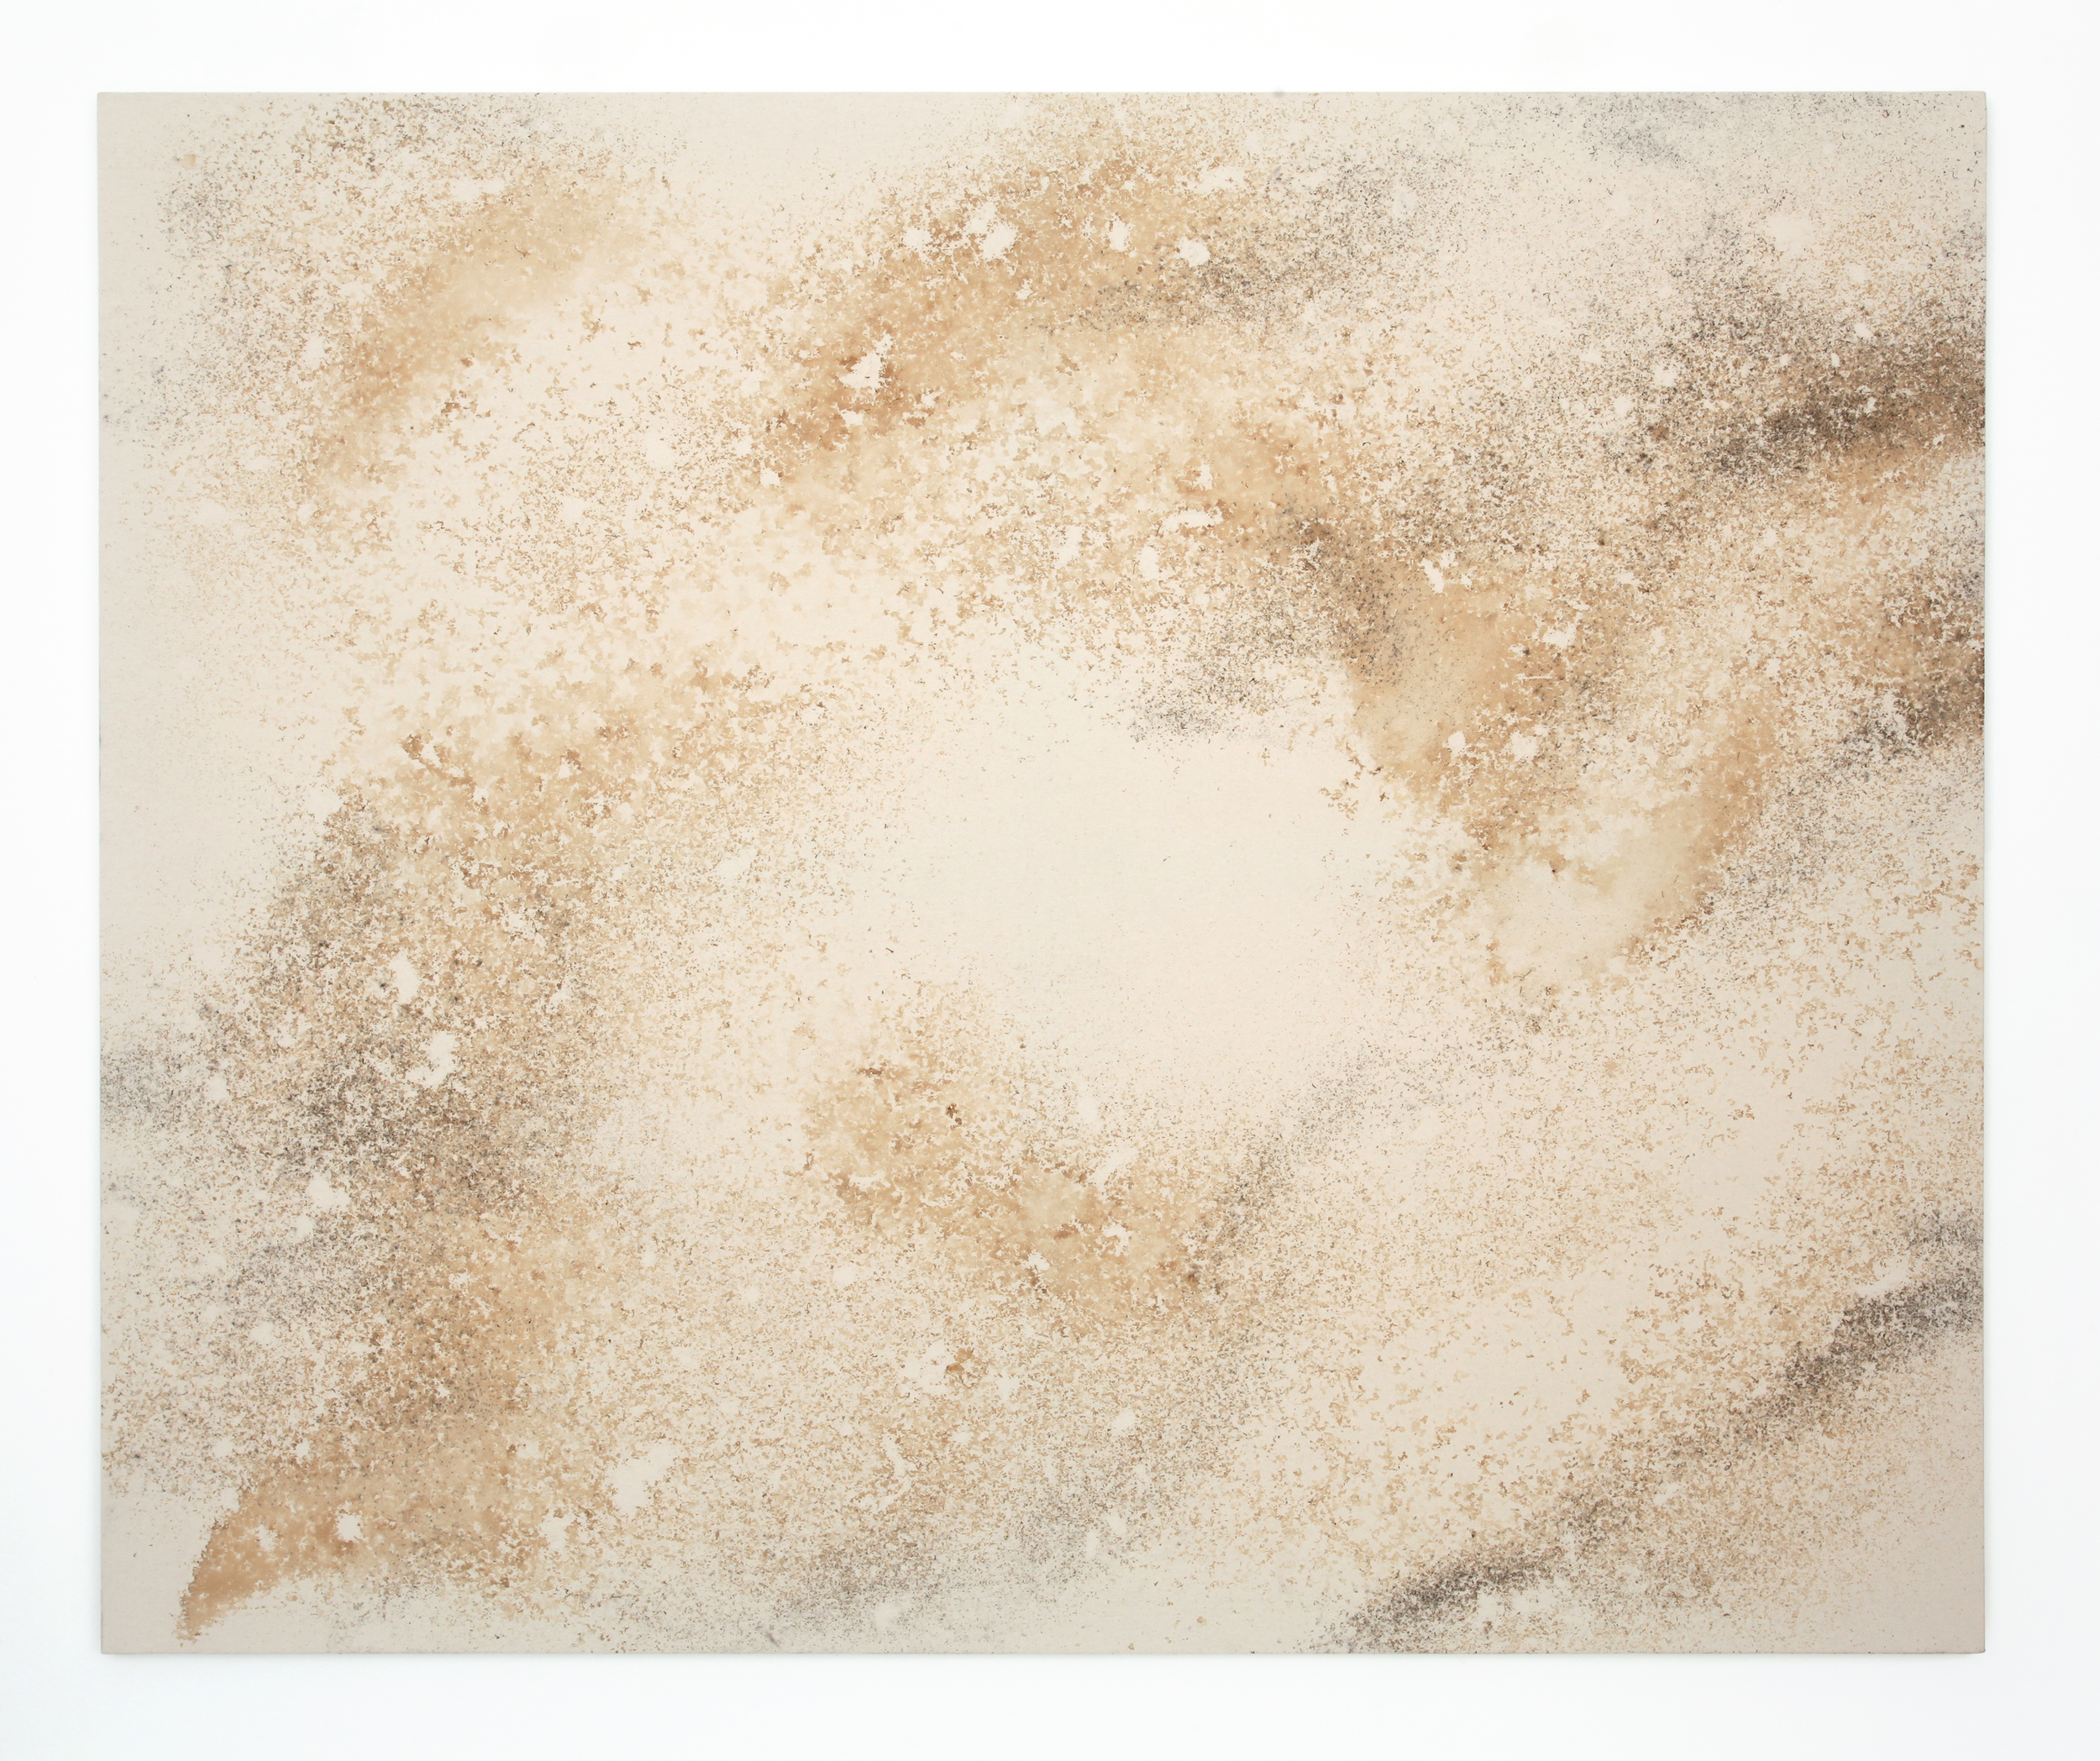 Untitled 1 (Stain), 2014